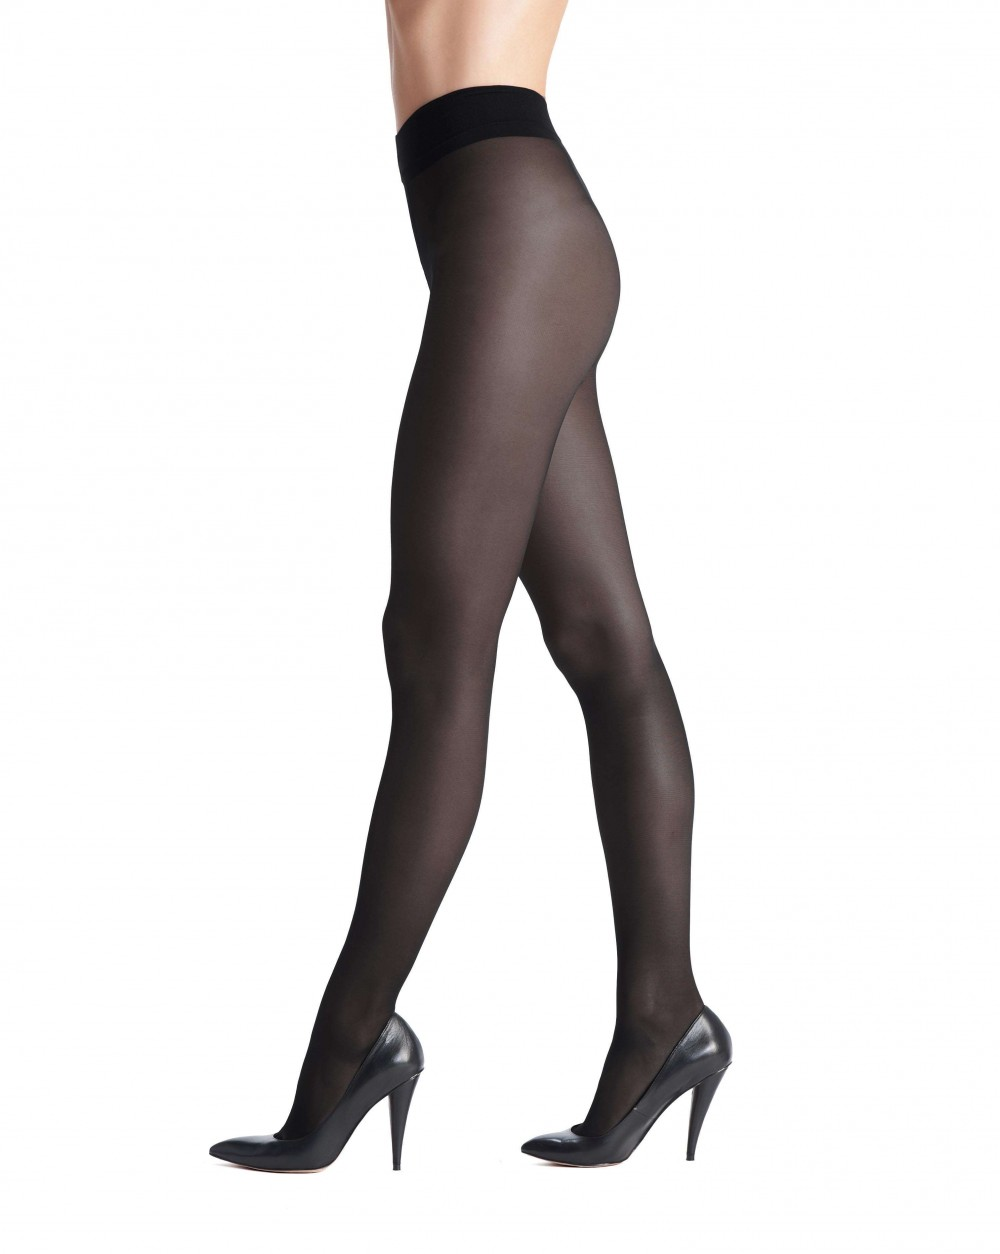 Found lowrise support pantyhose all clear